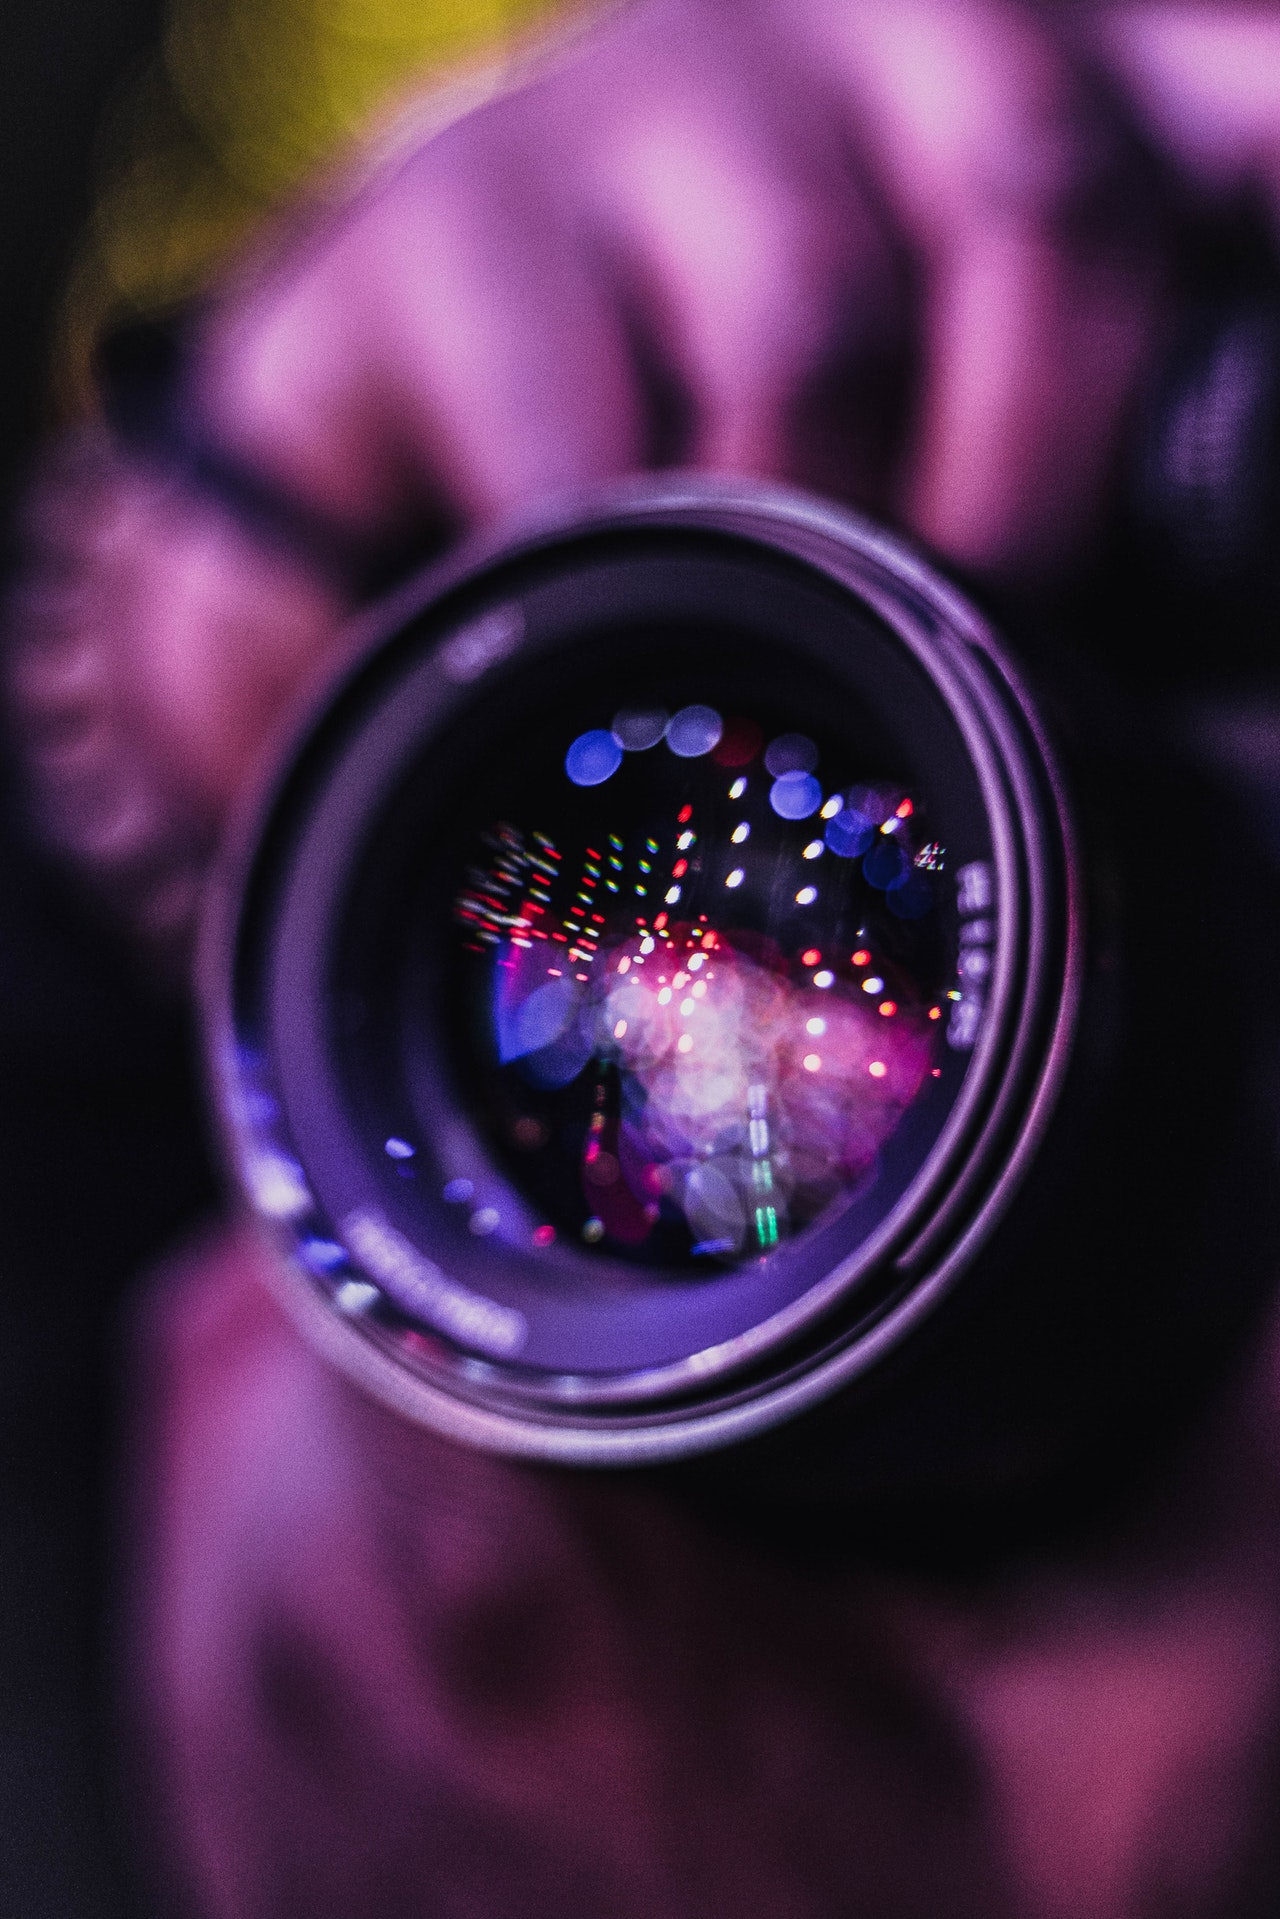 Technology Digital Photography Article Image